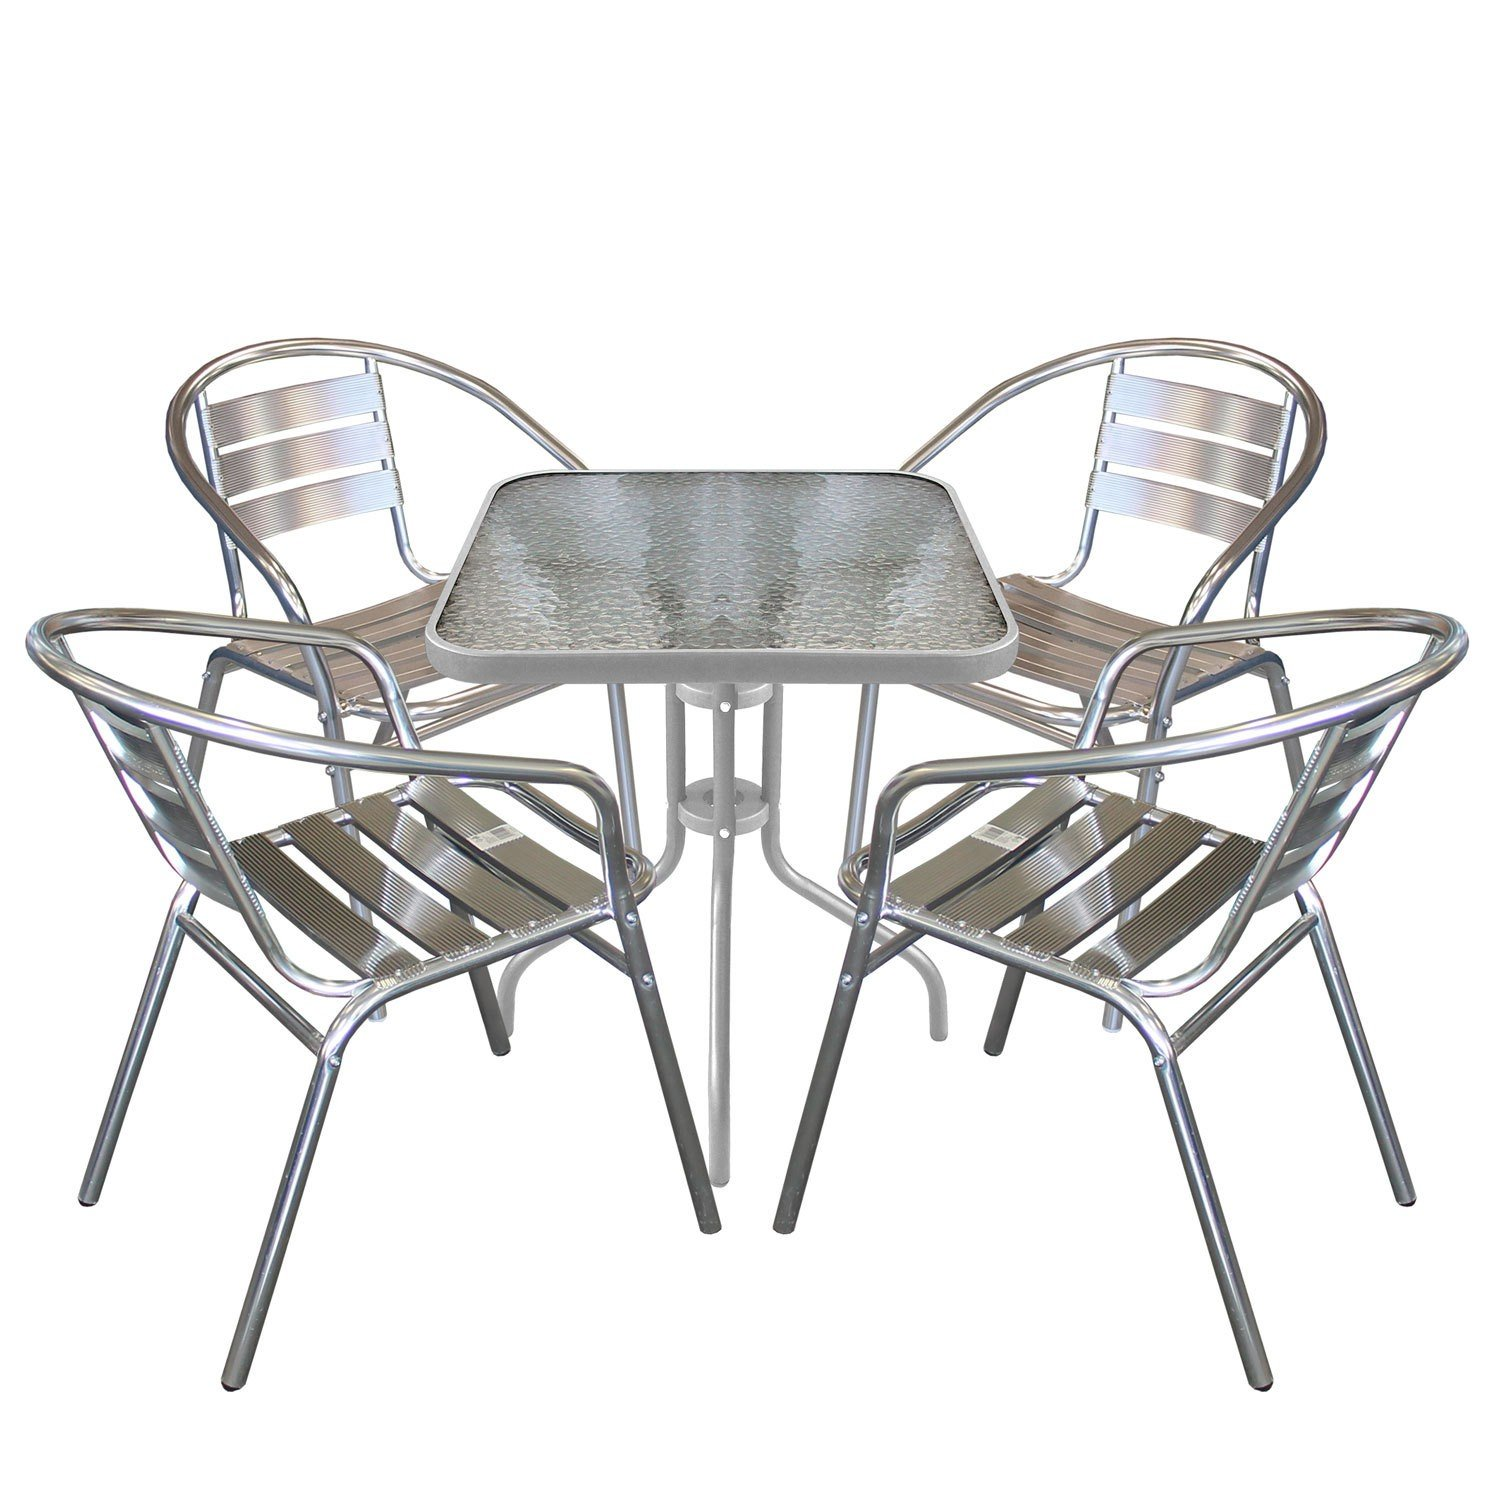 5tlg bistrogarnitur bistro set balkonm bel bistrotisch. Black Bedroom Furniture Sets. Home Design Ideas